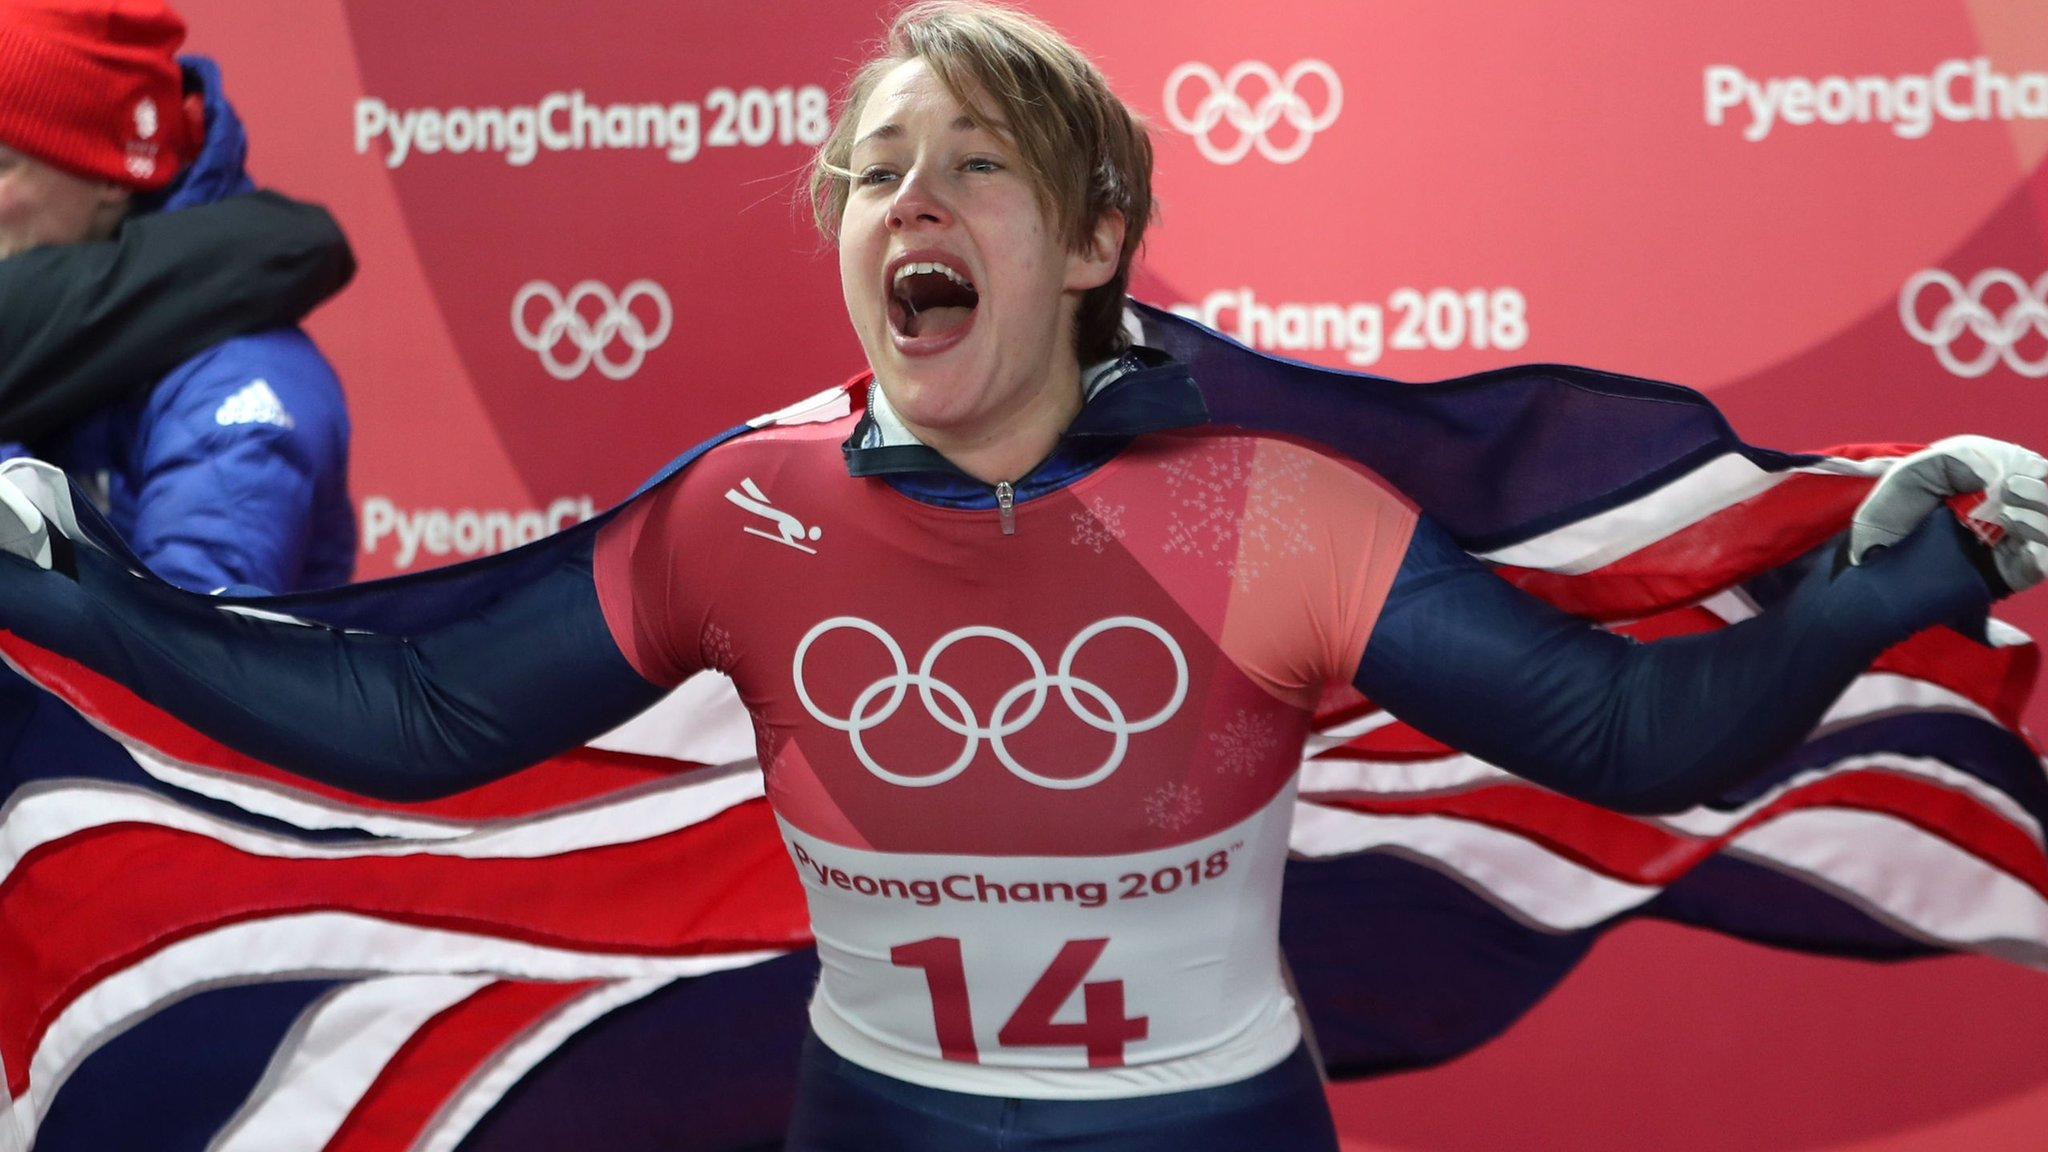 GB's Yarnold wins skeleton gold as Deas takes bronze - highlights & report